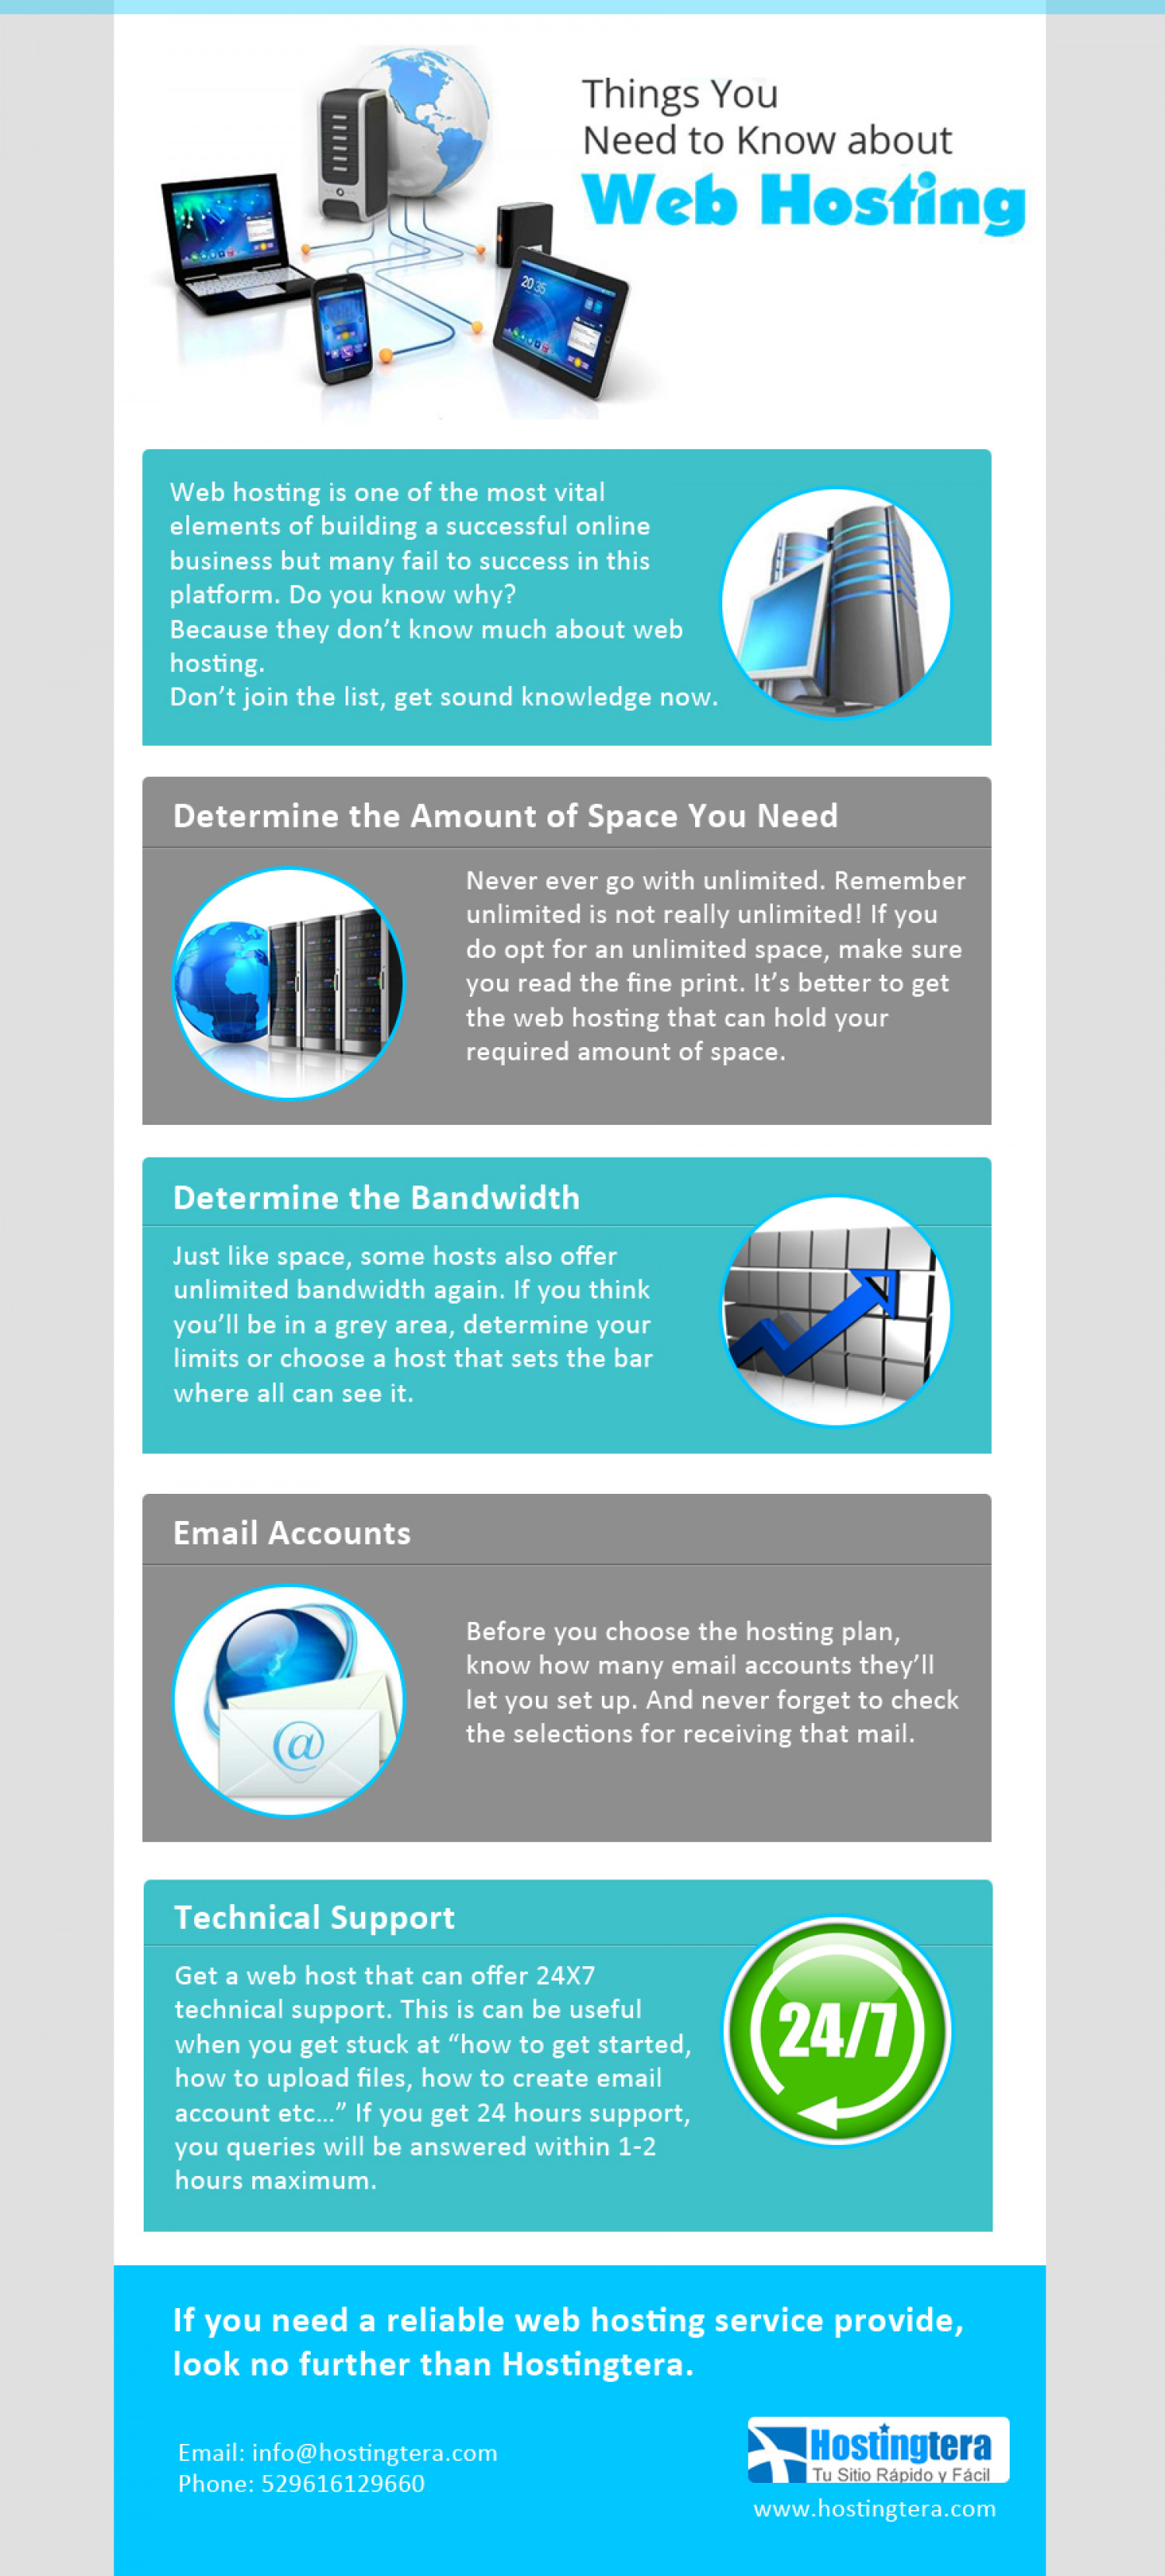 Things You Need to Know about Web Hosting Infographic